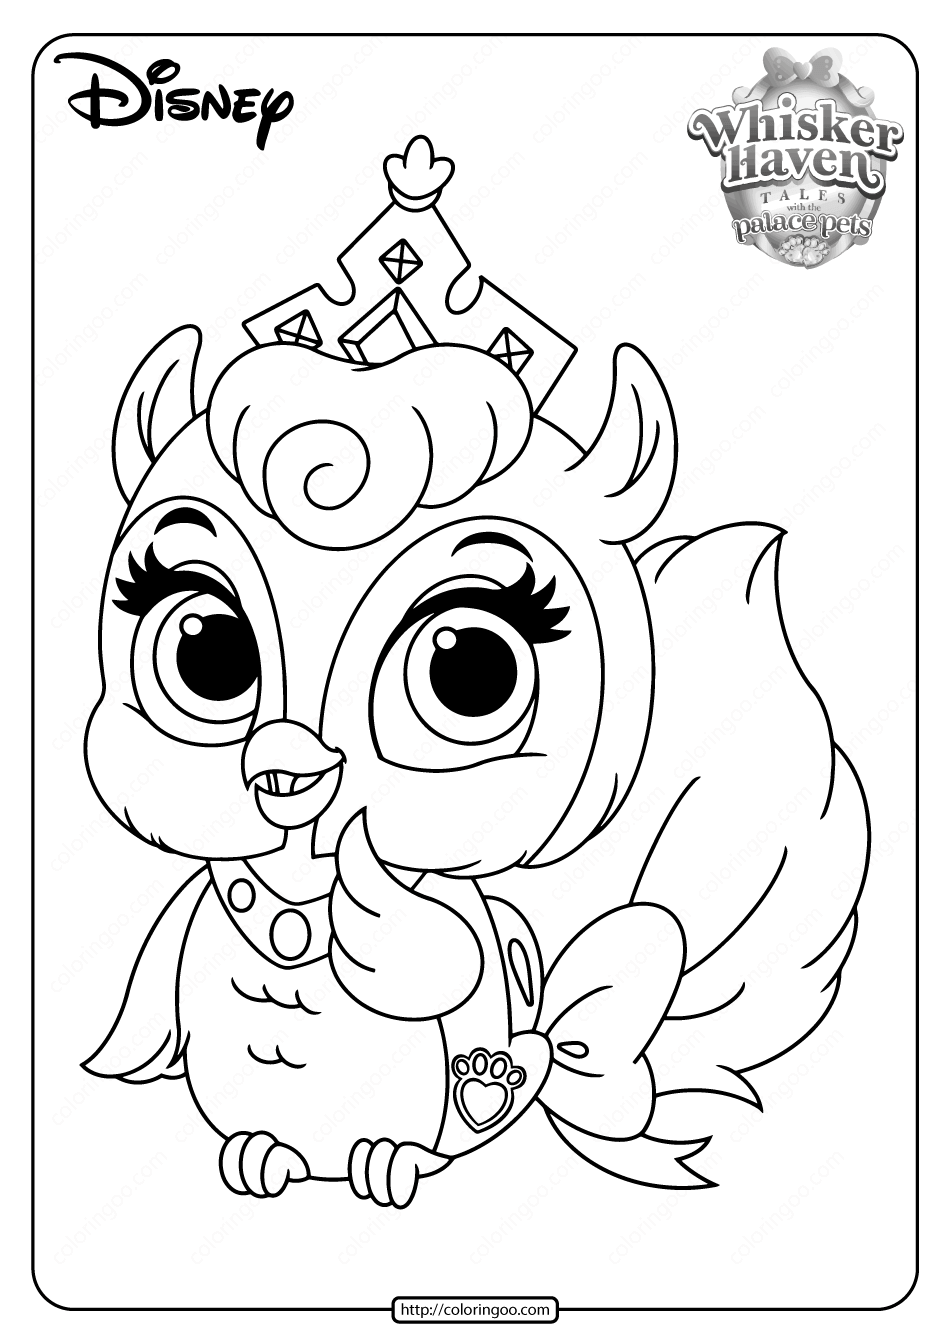 Printable Palace Pets Fern Coloring Pages